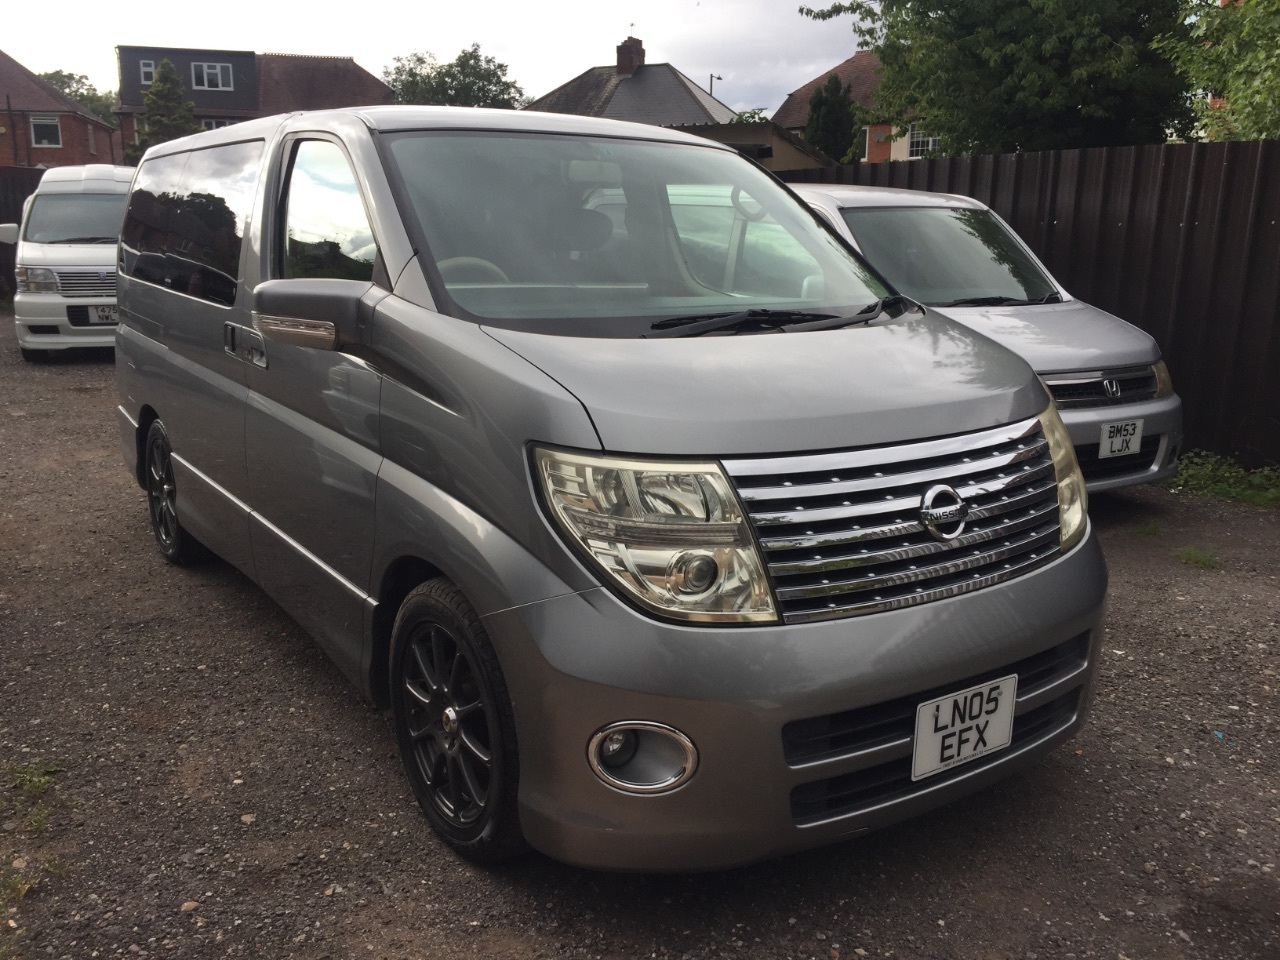 Nissan Elgrand 2.5 V6 petrol homy highway star MPV 8 seater fresh import MPV Petrol Grey